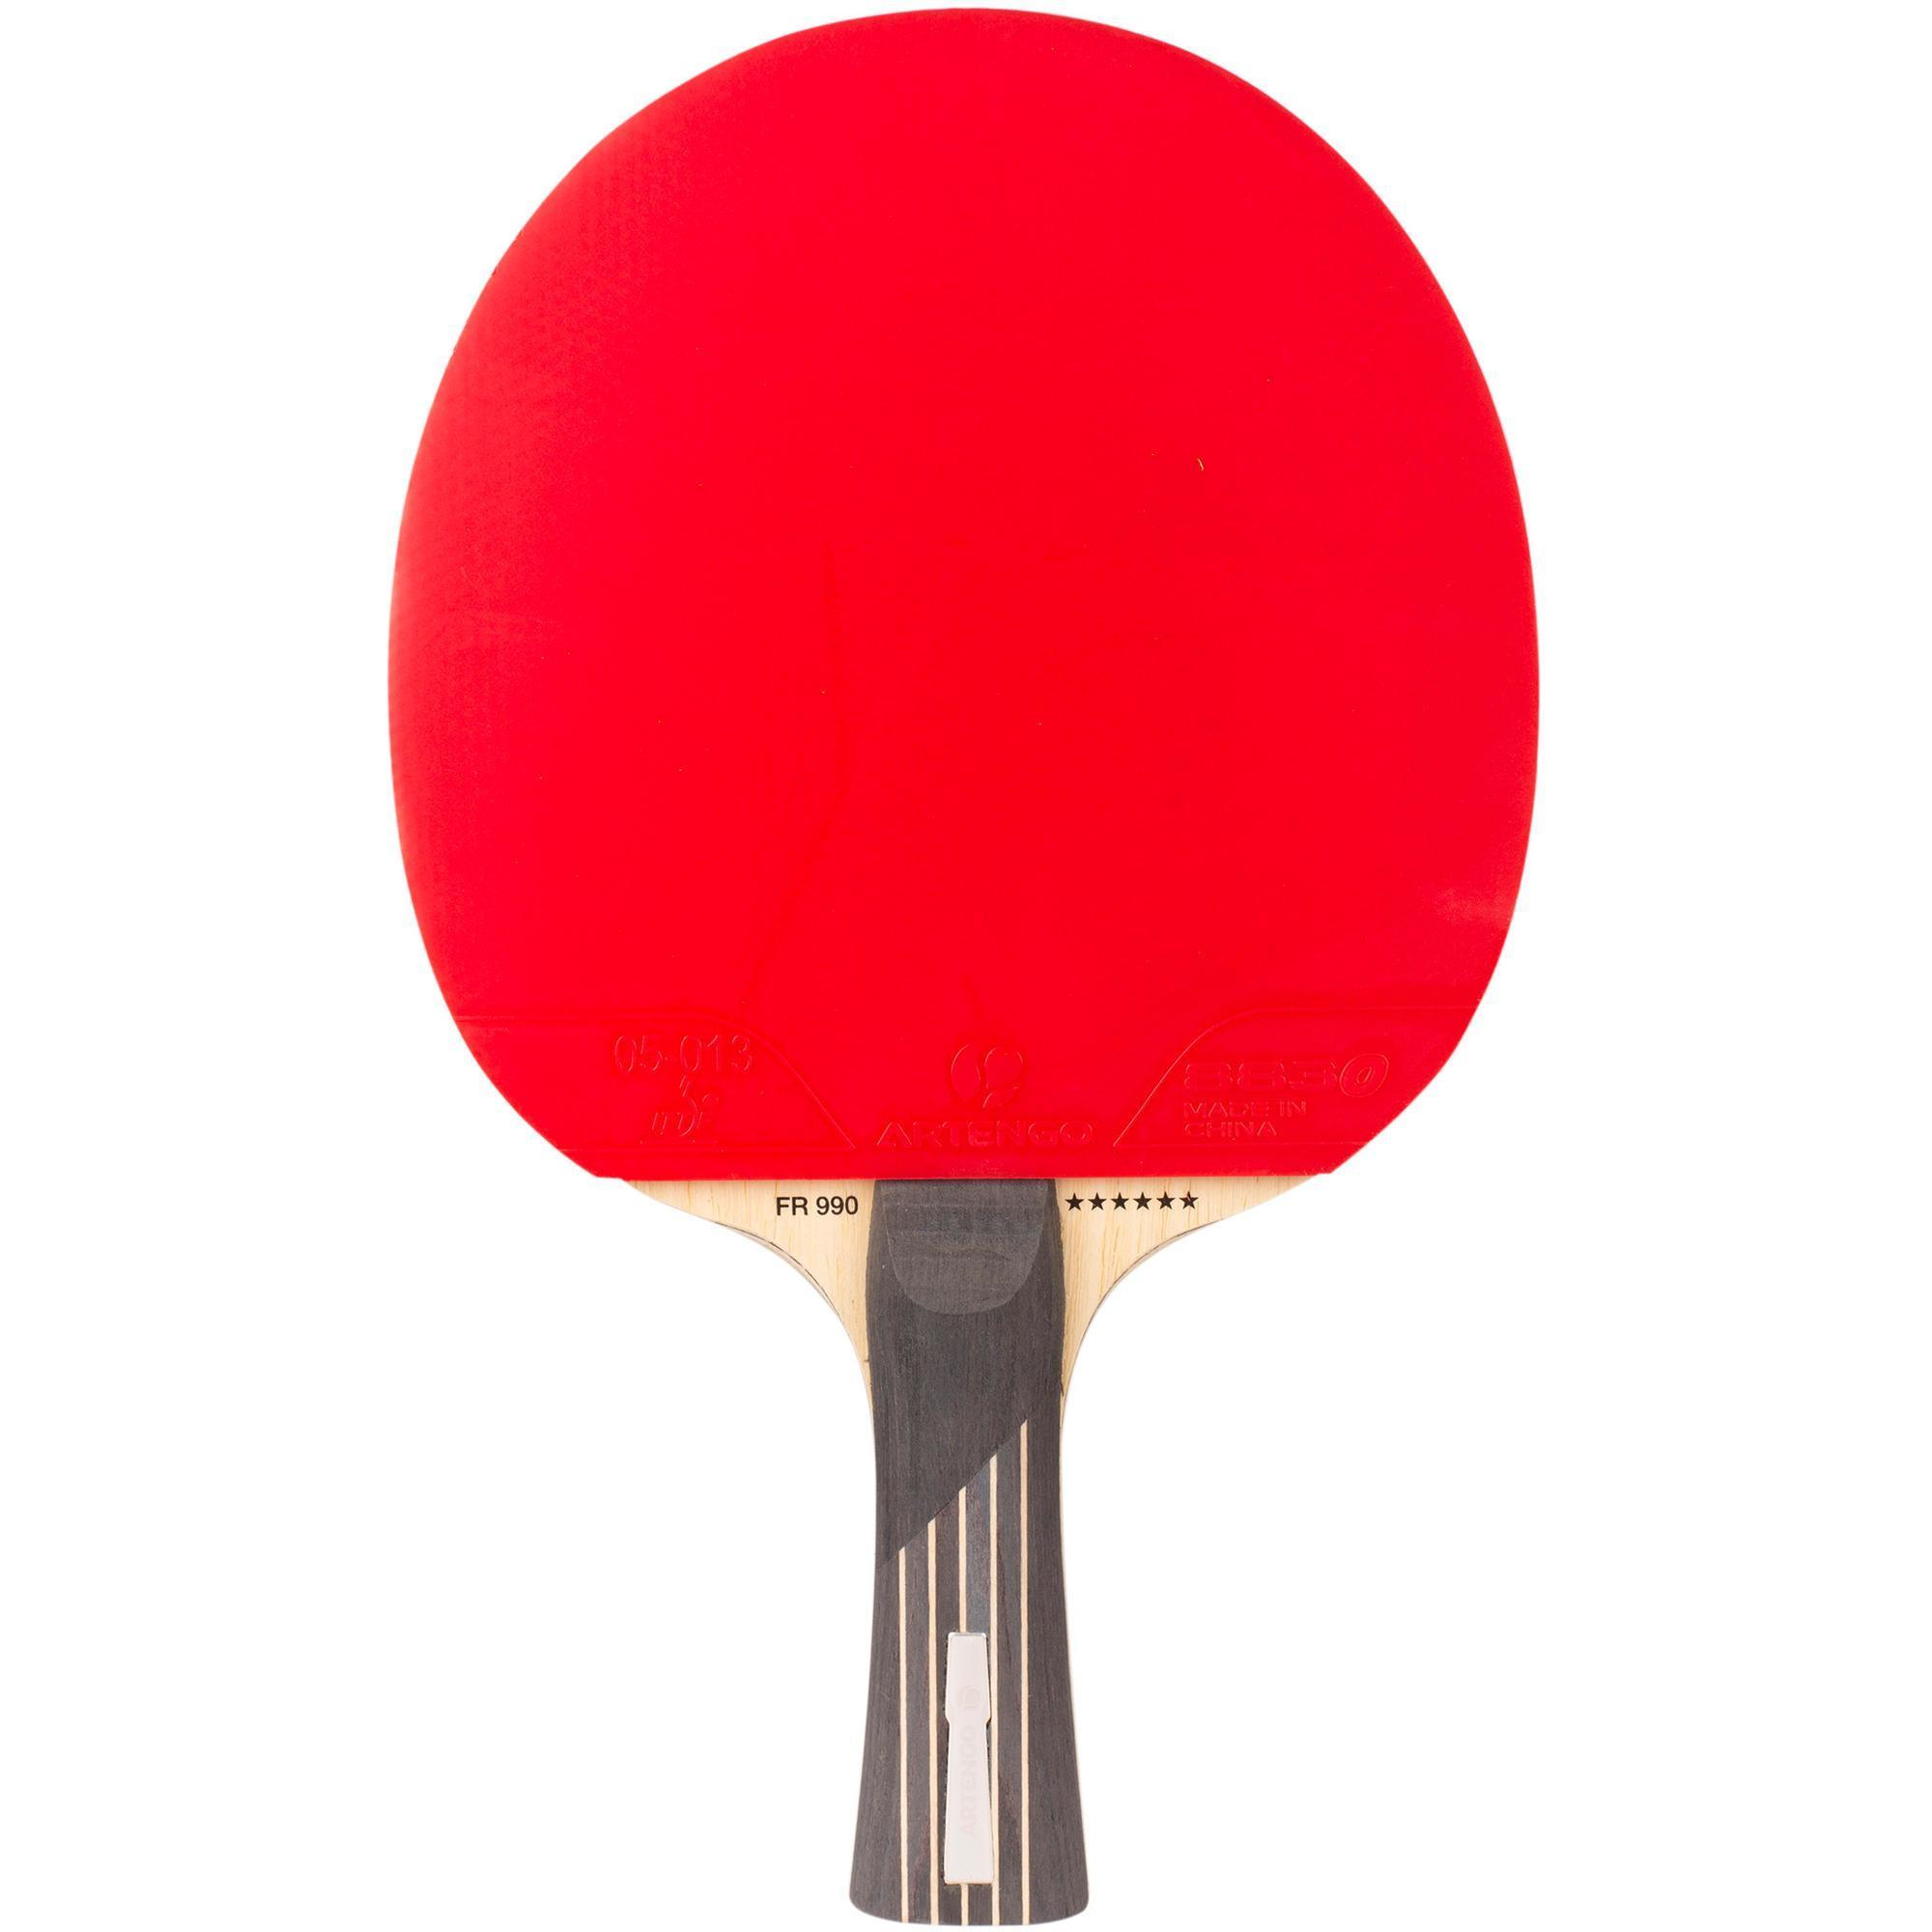 Fr990 6 table tennis bat artengo for Table 4 en 1 intersport